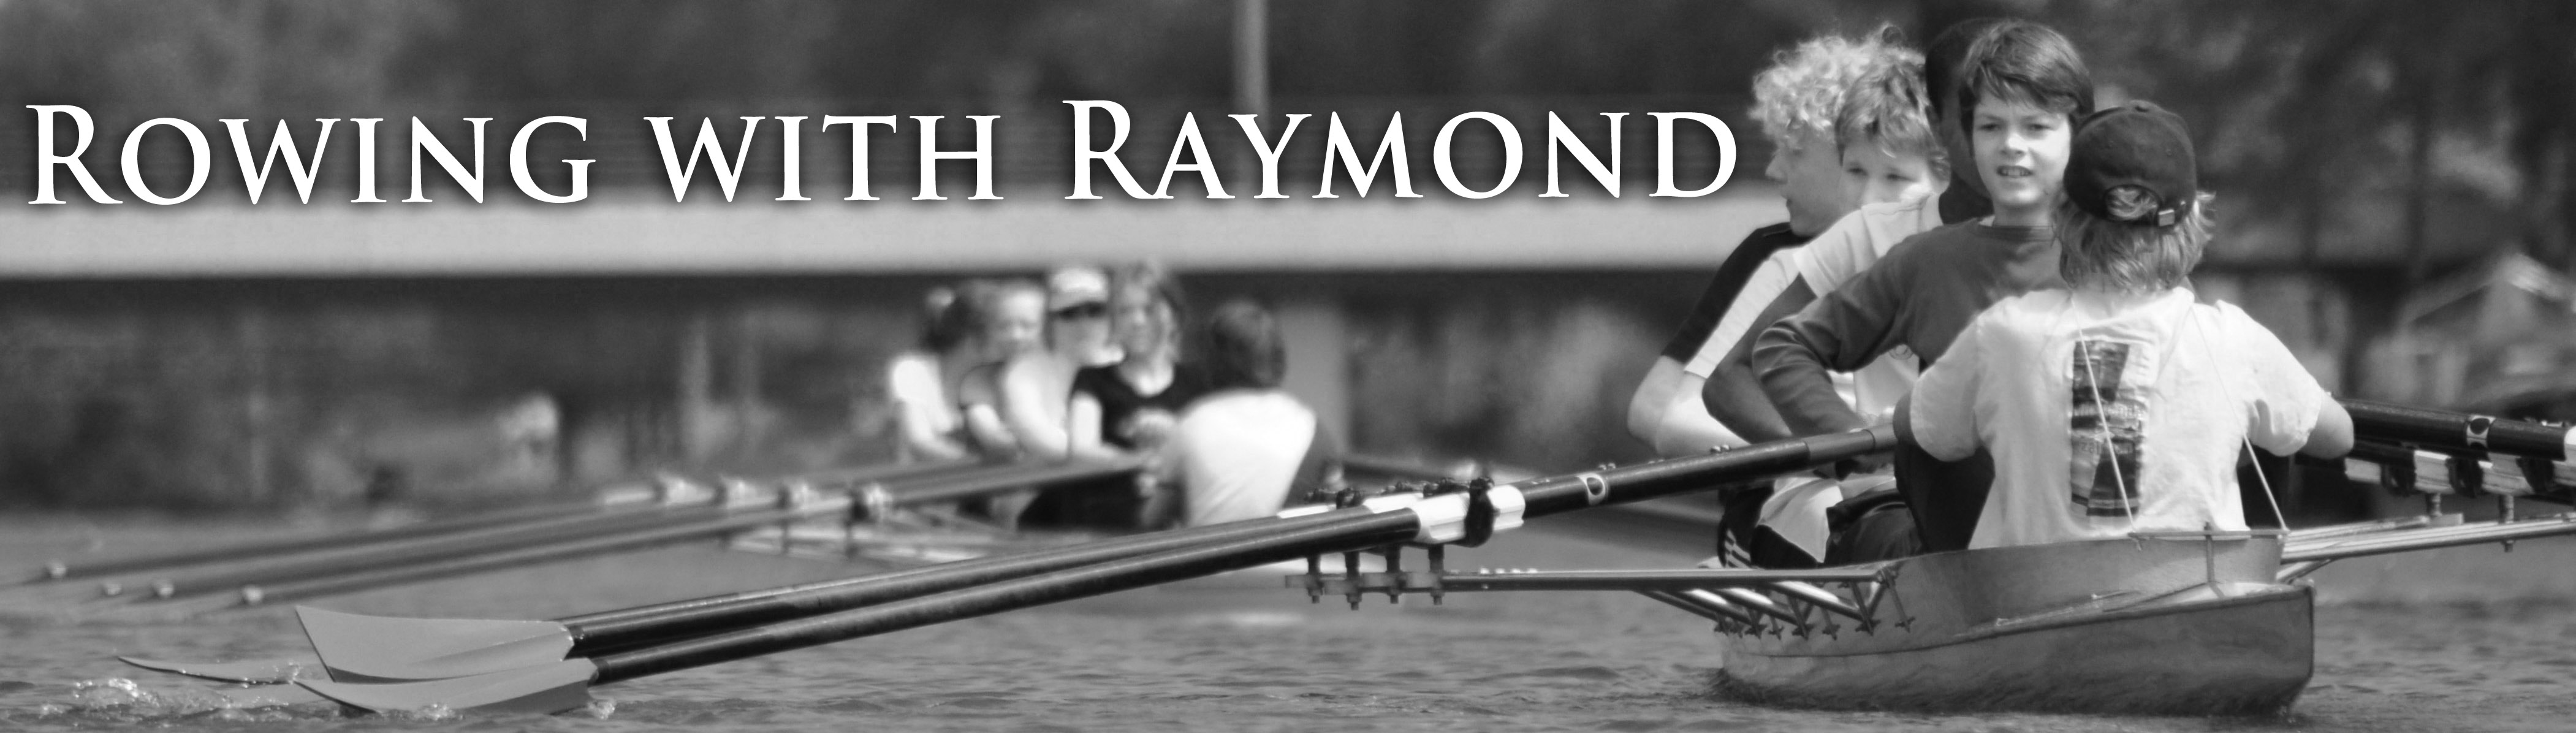 Rowing with Raymond